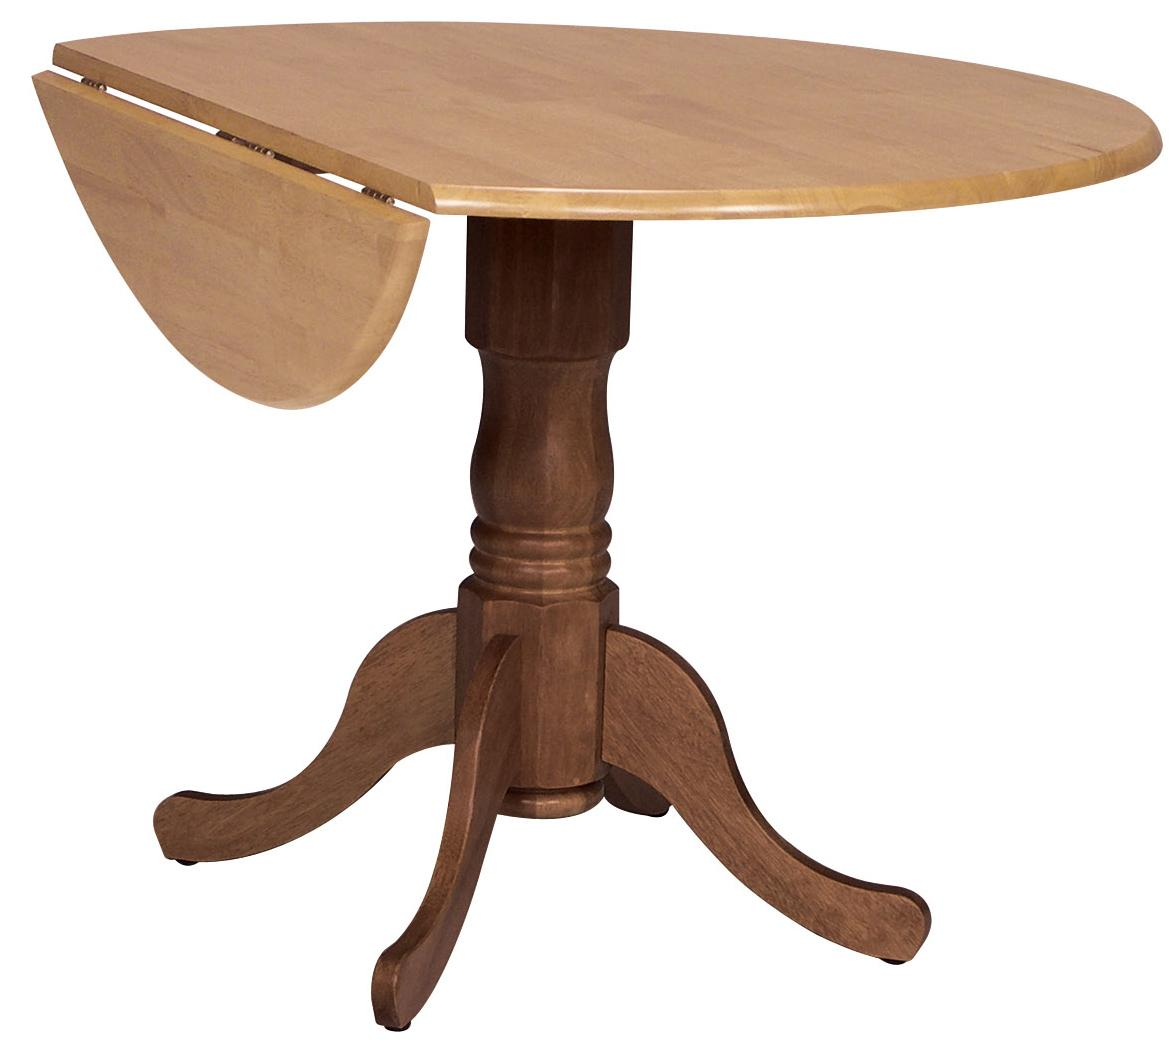 John thomas dining essentials 42 round drop leaf pedestal for 42 dining table with leaf